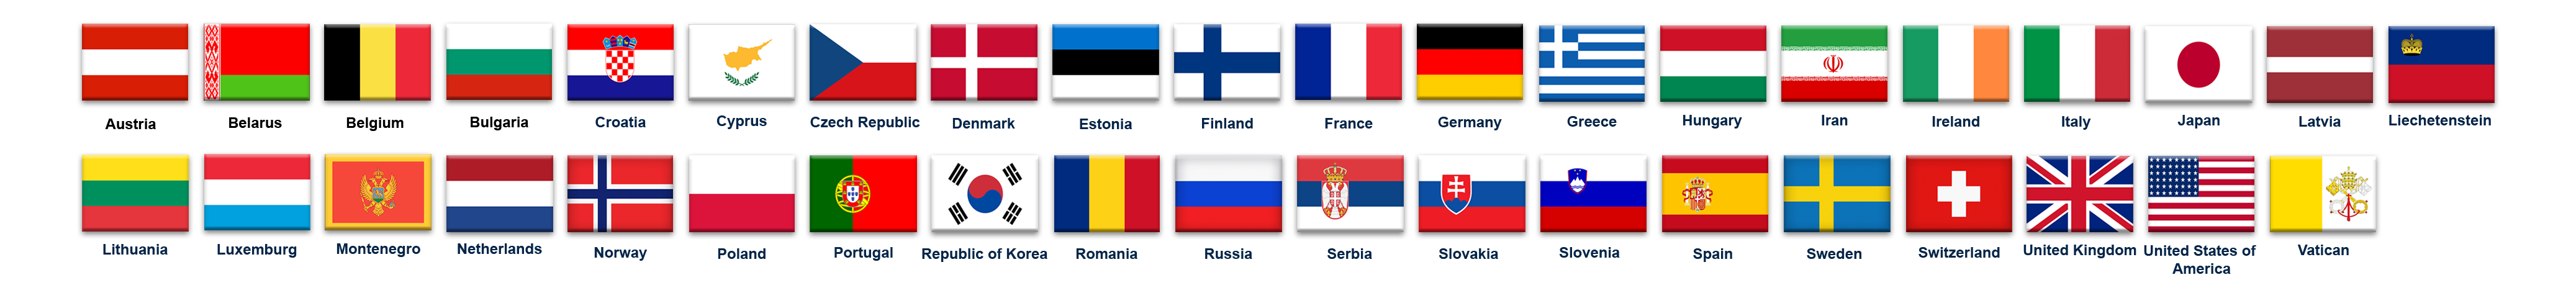 Flags of CTIF Member Nations 2019